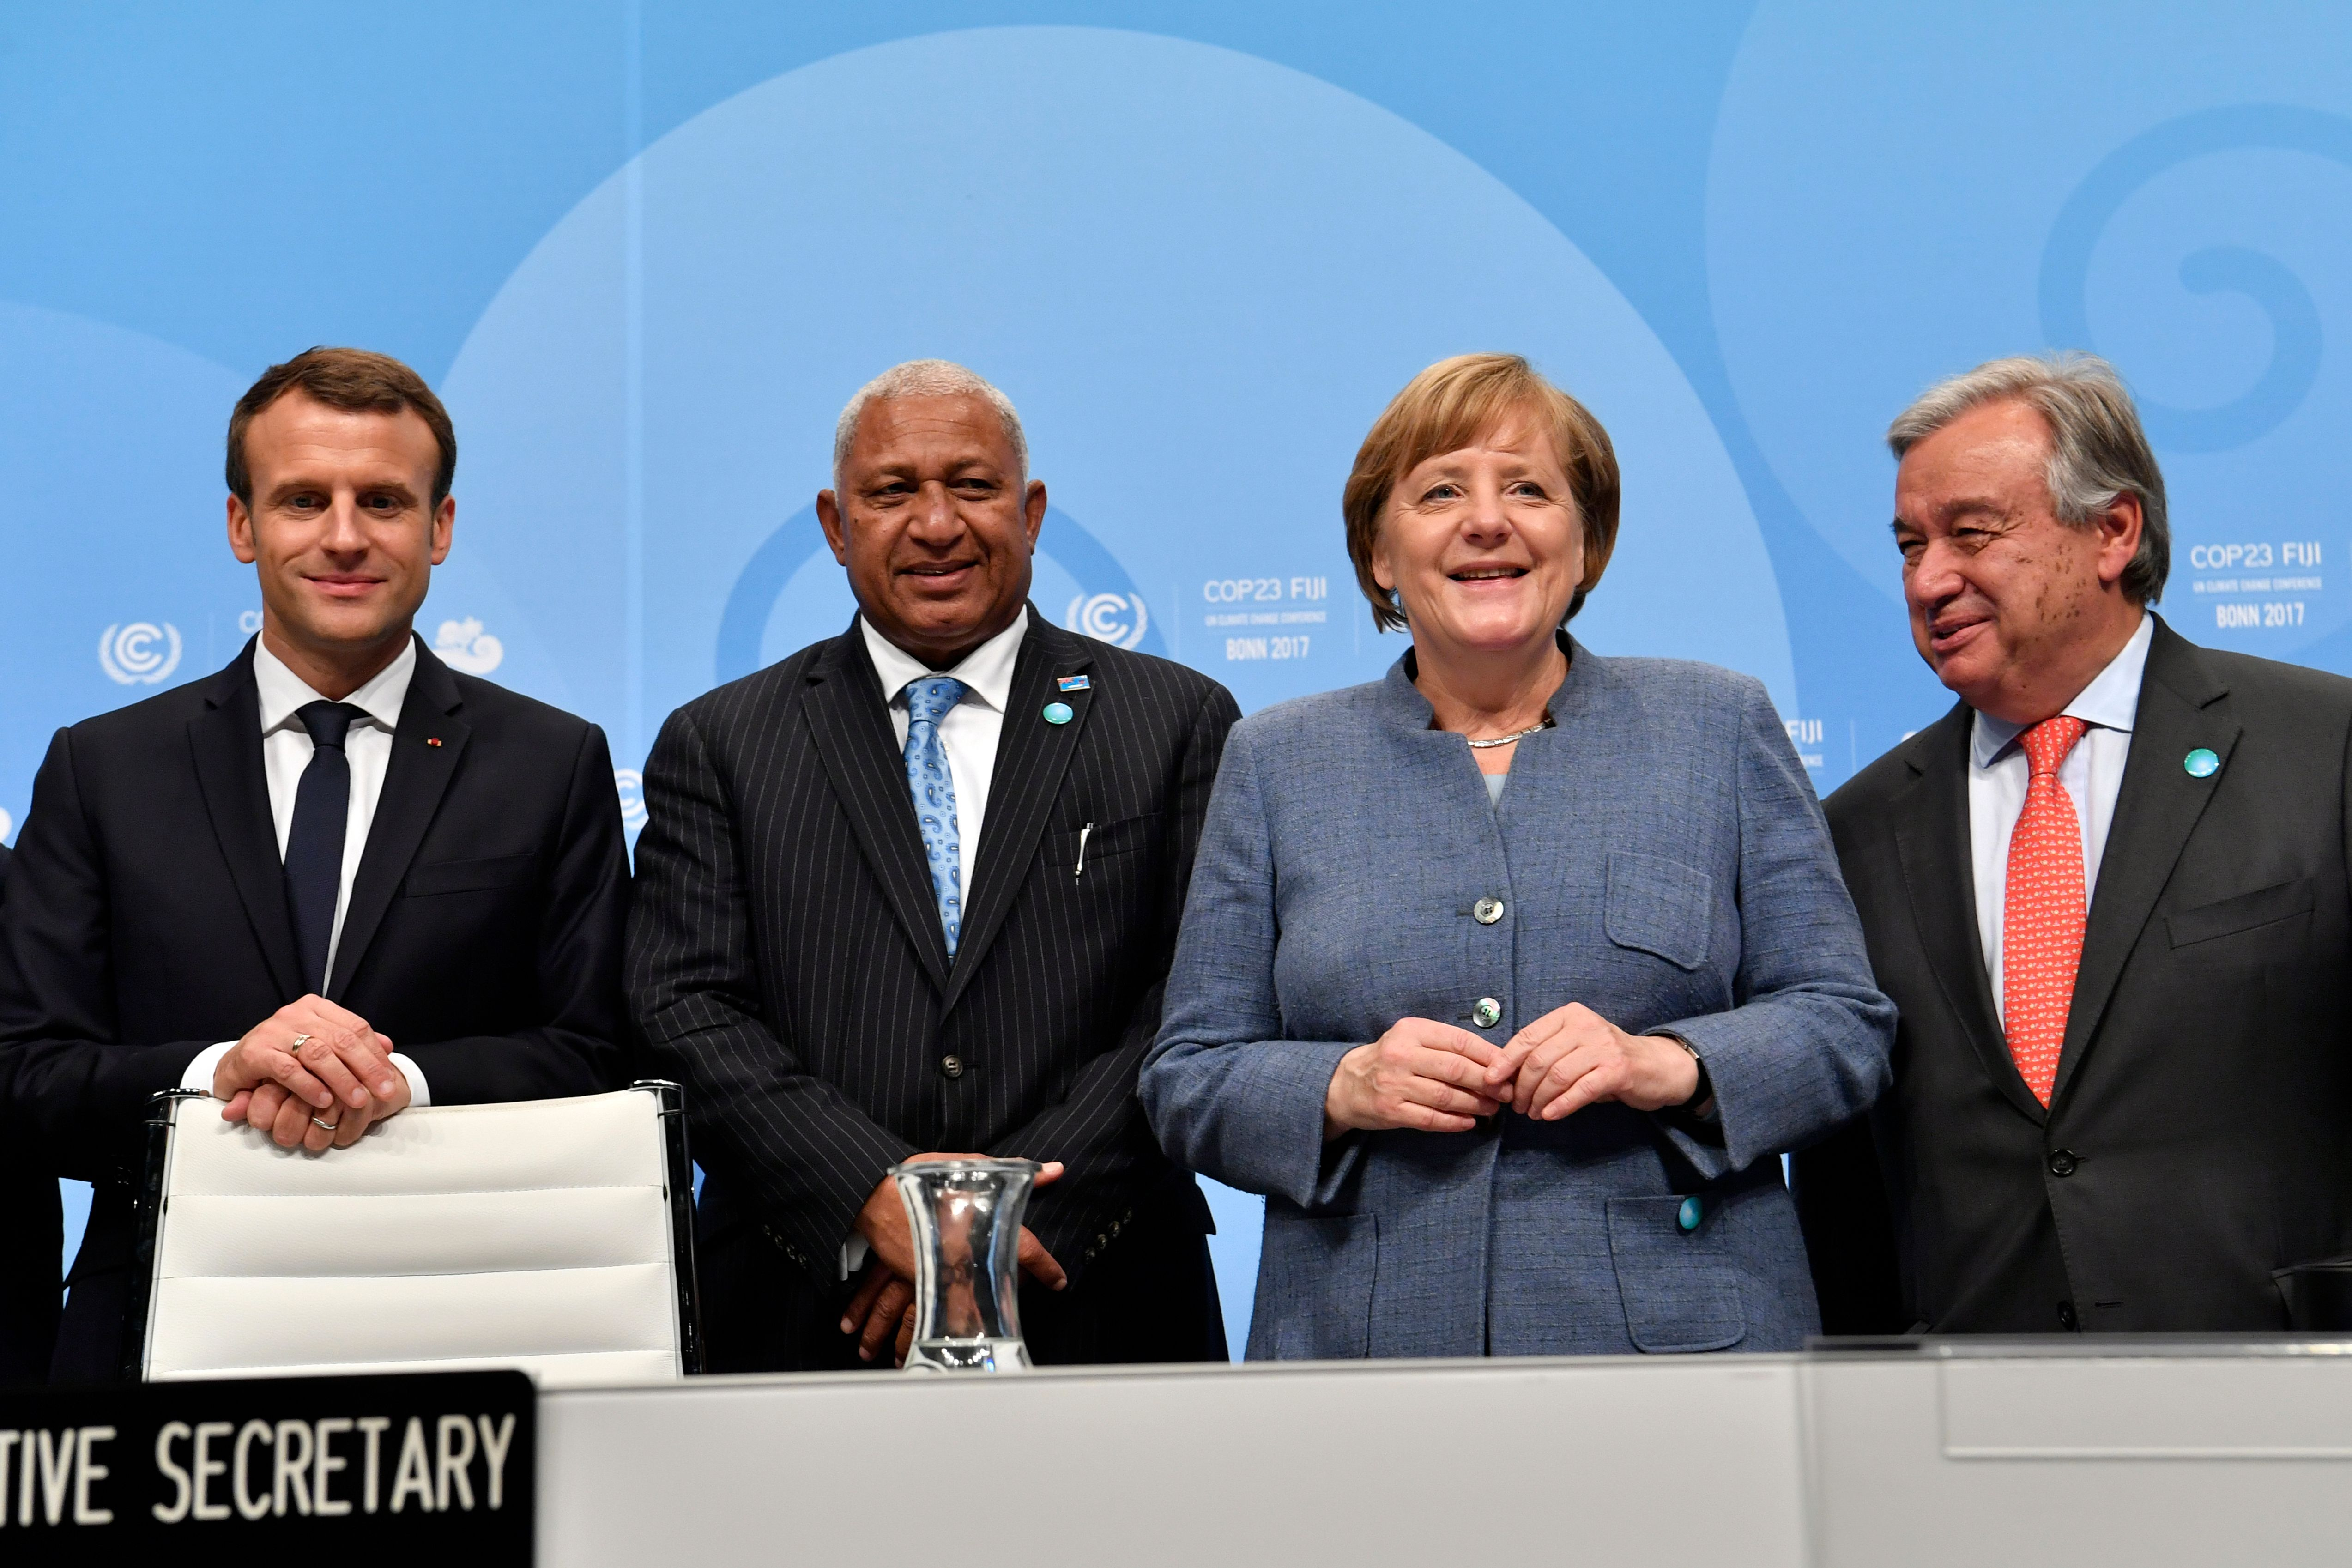 French President Emmanuel Macron, Prime Minister of Fiji Frank Bainimarama, German Chancellor Angela Merkel and UN Secretary-General Antonio Guterres pose before the opening session at the UN conference on climate change on Nov. 15 in Bonn